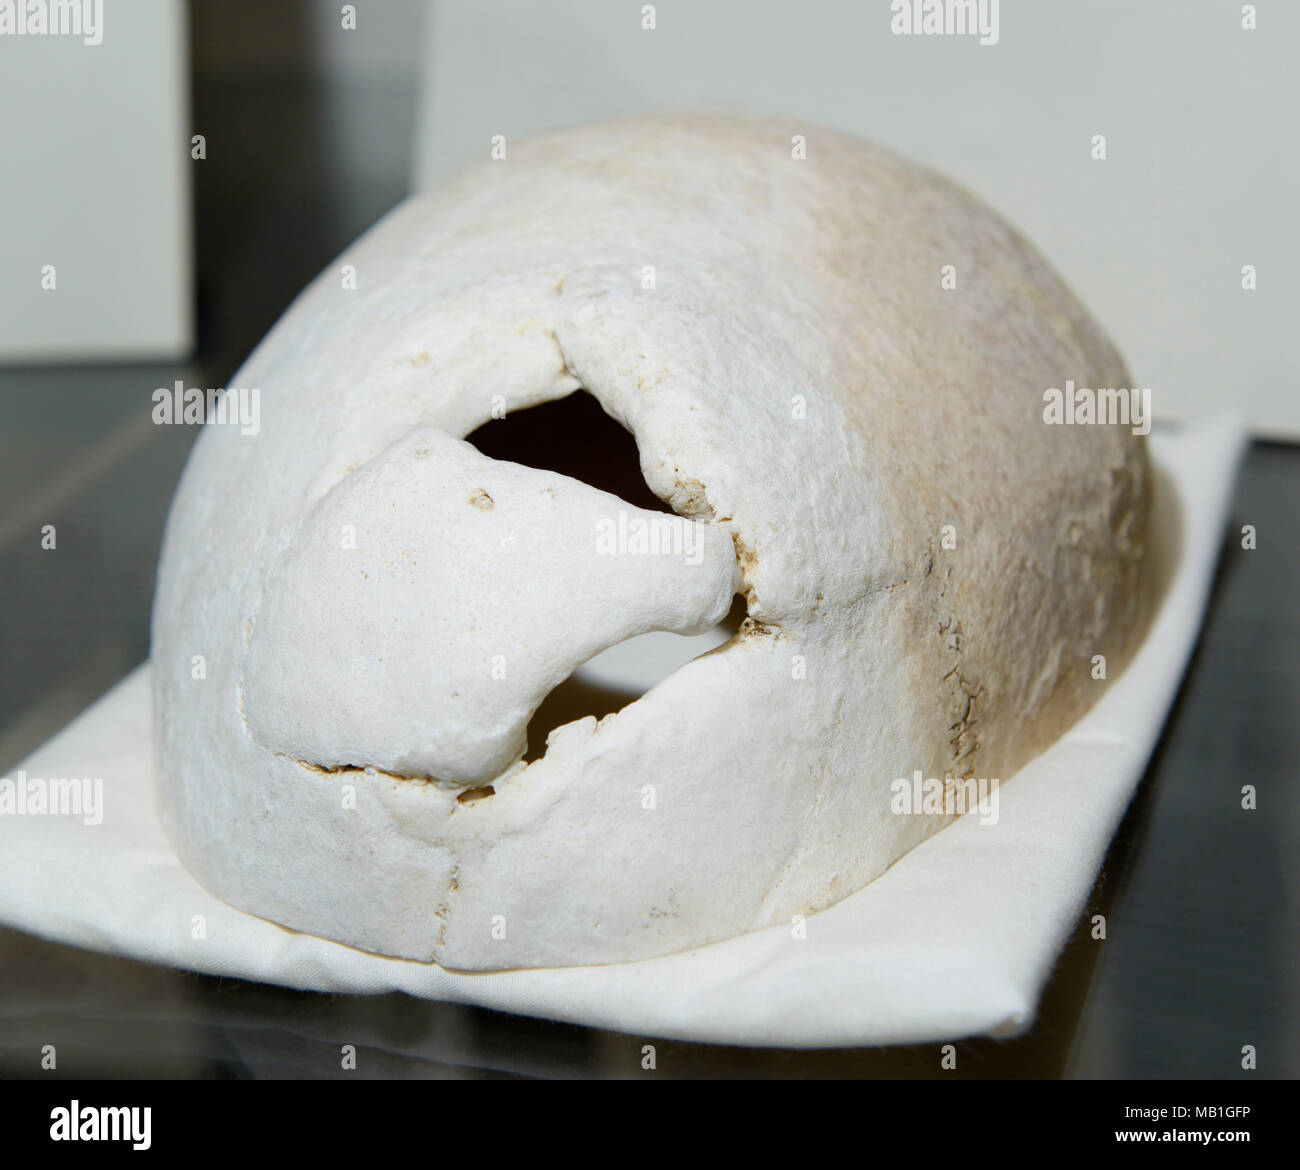 Phineas Gage skull, on display at Harvard Medical School. Hole in the cranium shows where tamping iron went through his frontal lobe in 1848. - Stock Image